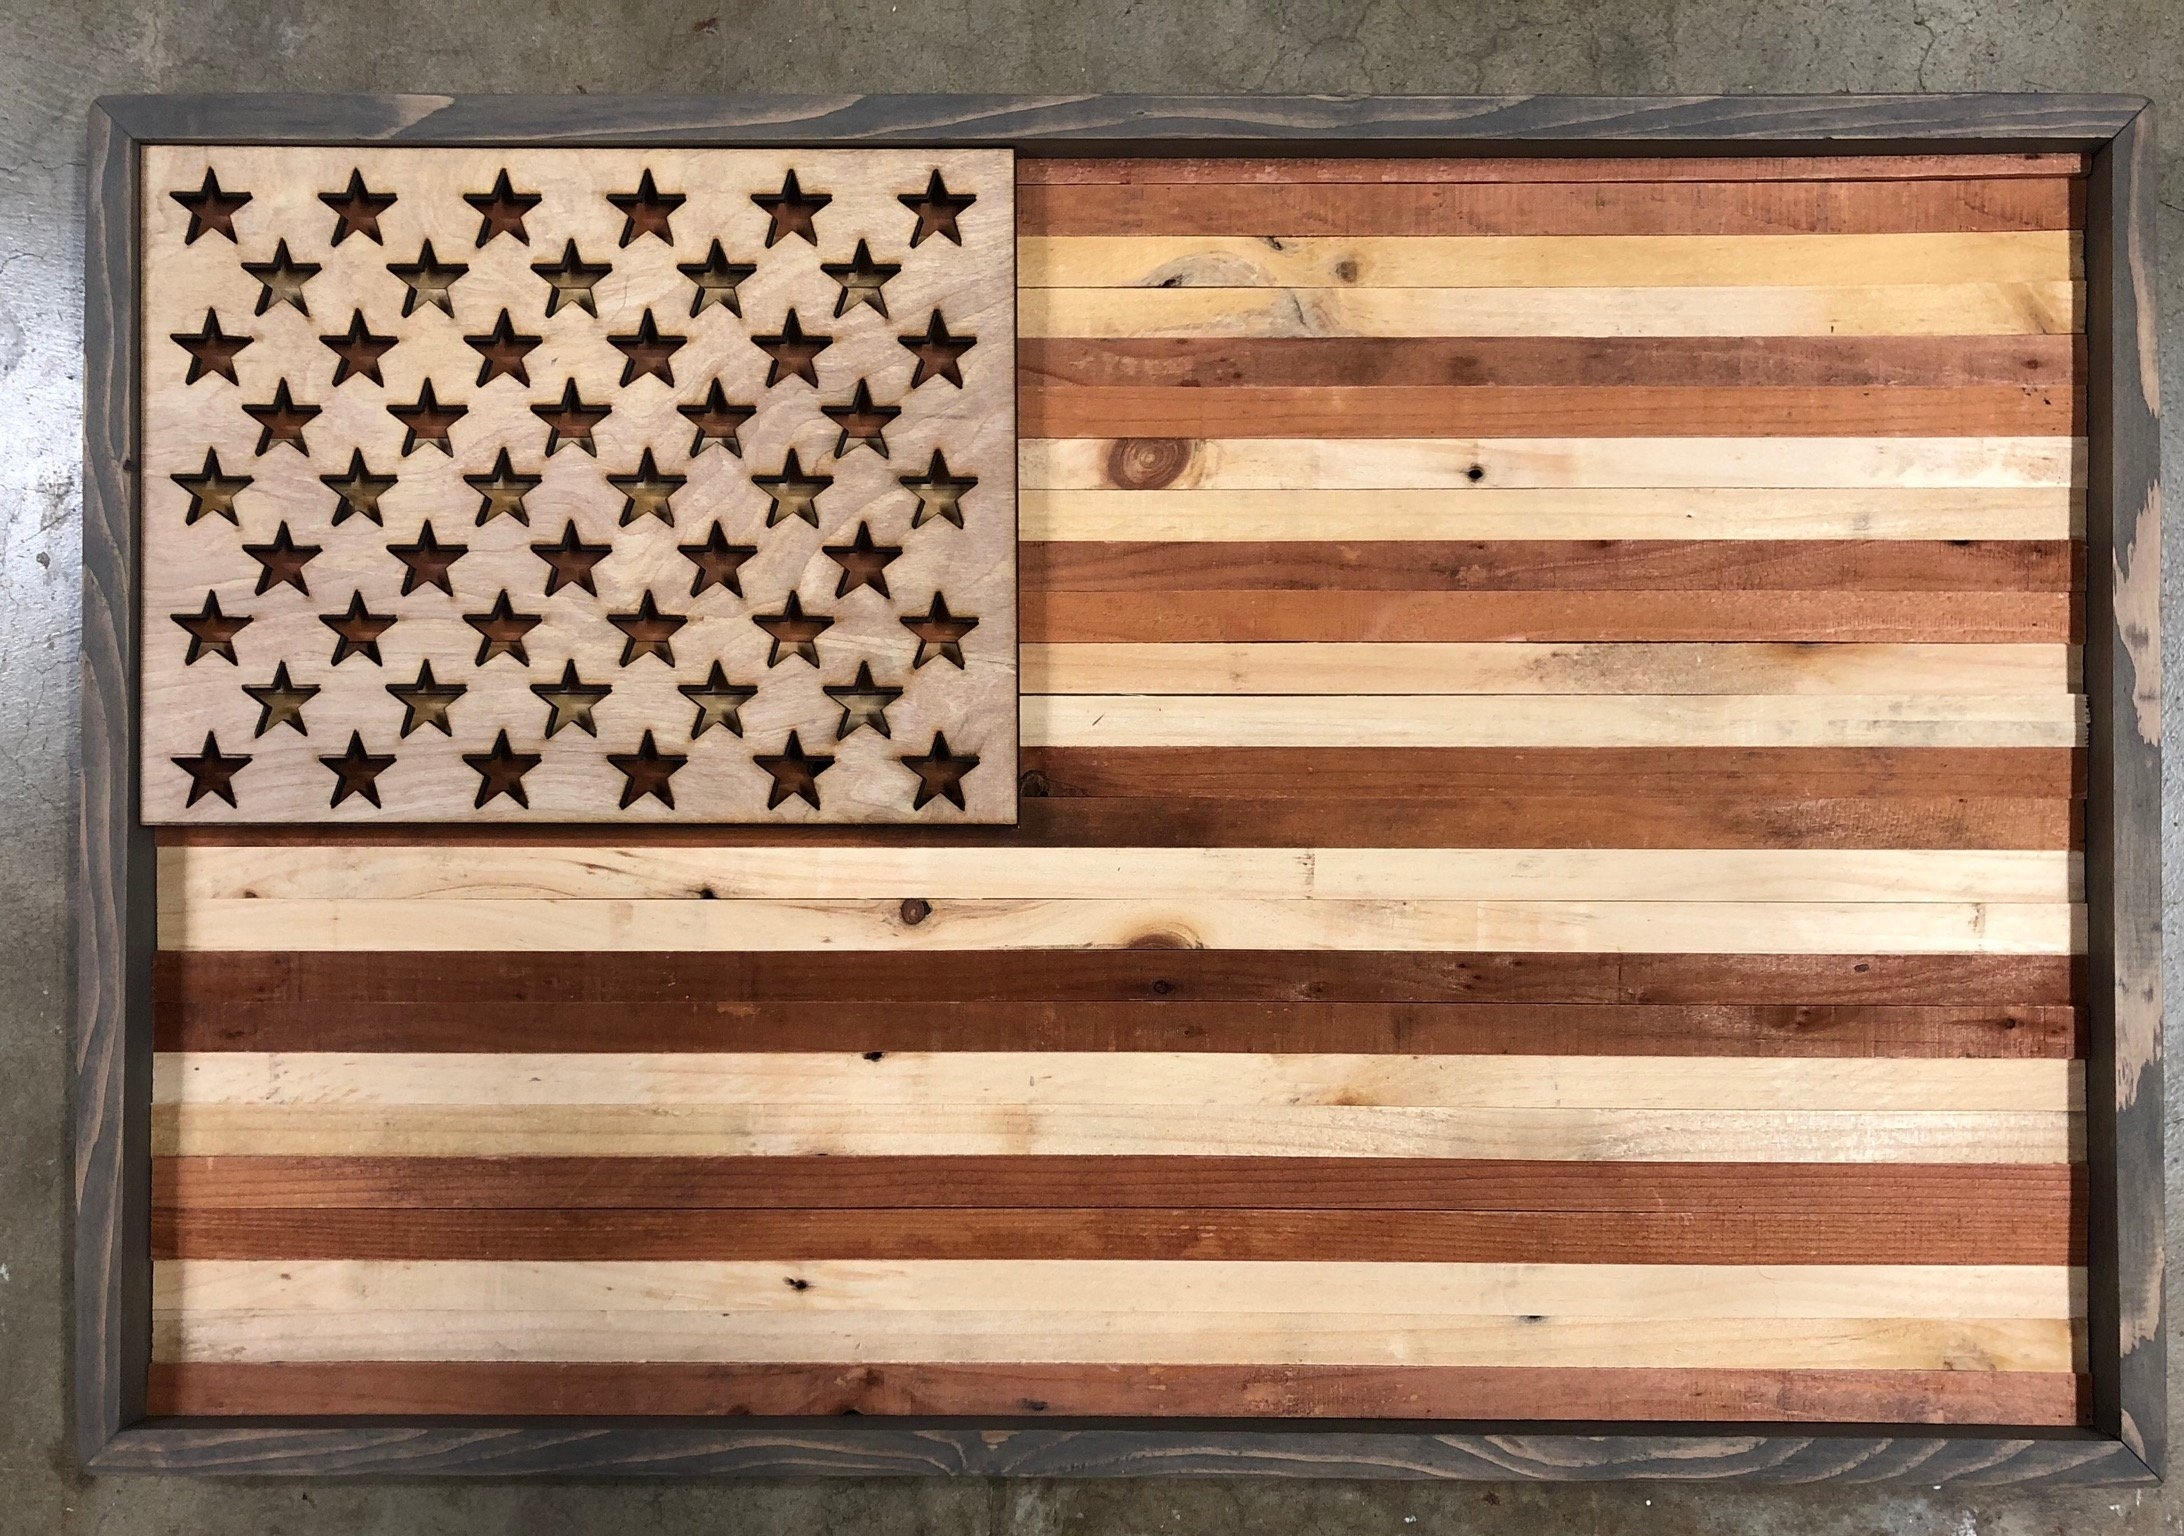 Rustic American Flag Wall Art Within Current Rustic American Flag Wall Art (View 13 of 20)